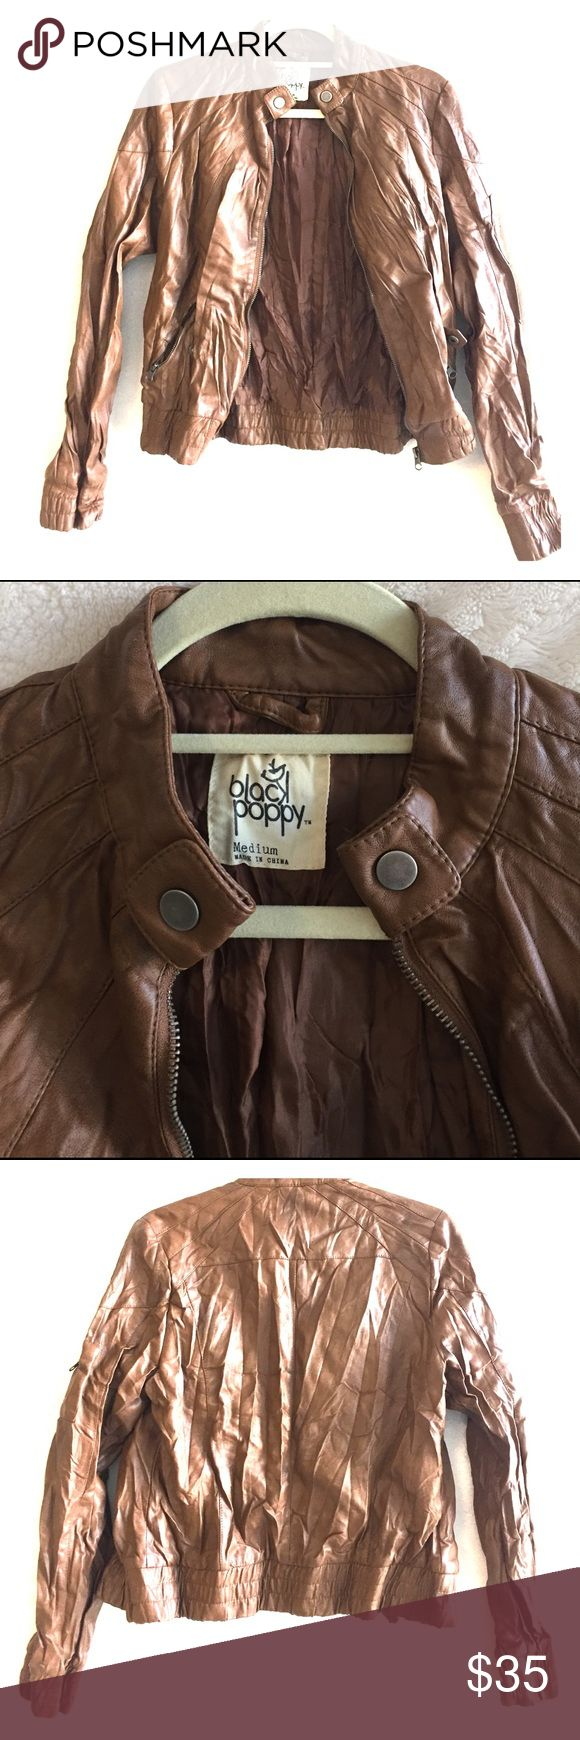 Brown Faux Learher Bomber Jacket Like new condition brown bomber for the spring and fall. Zipper detail on sleeves, purchased at PacSun. Runs small - I usually wear a small and this is a medium. Black Poppy Jackets & Coats